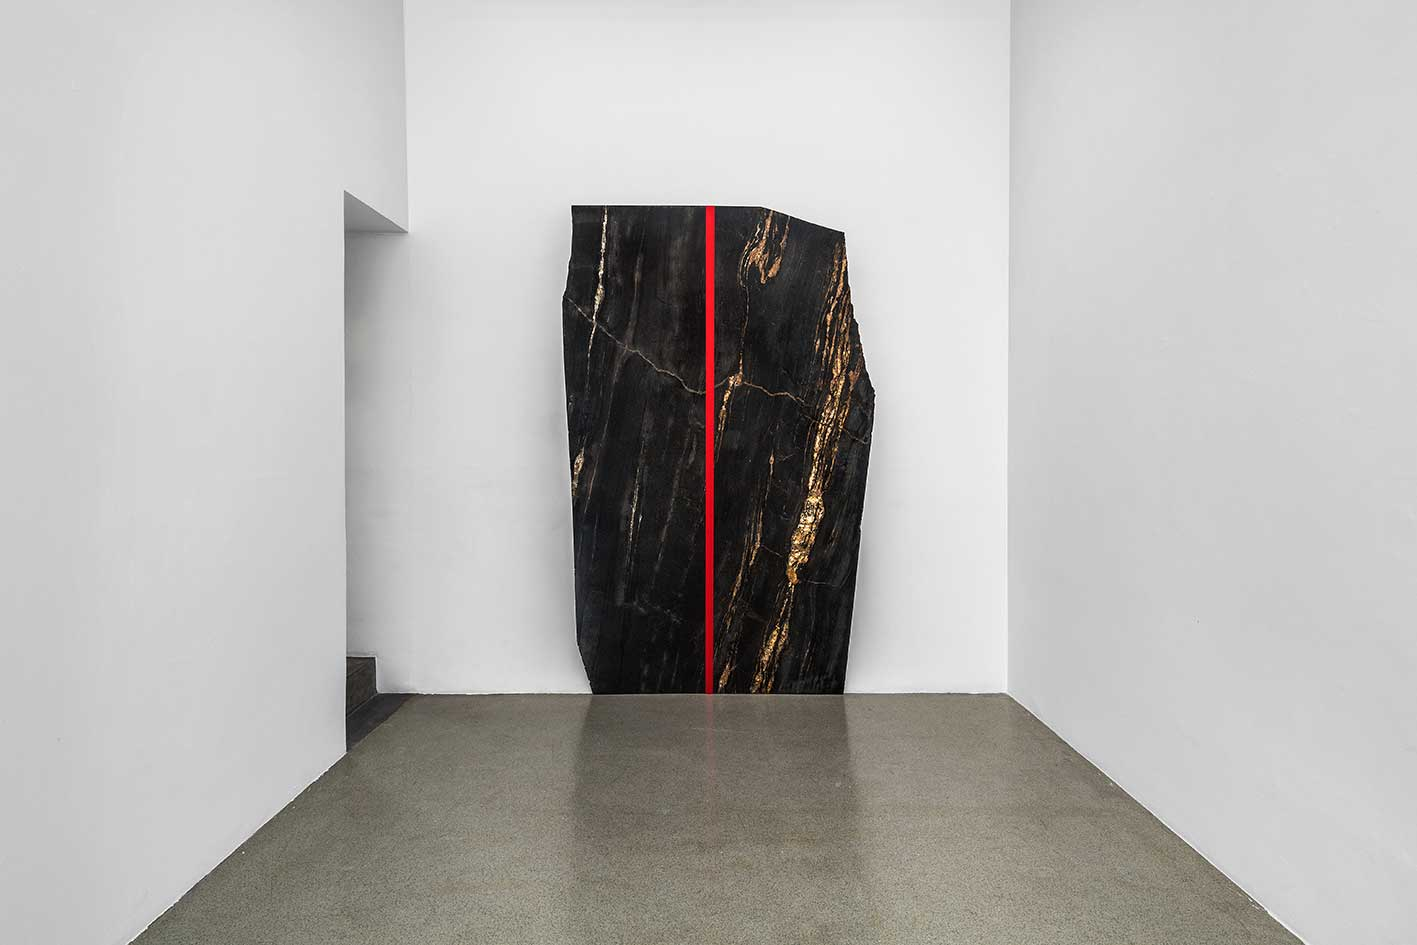 Jose Davila's Sculptural Exhibition at Galería OMR in Mexico City | Yellowtrace